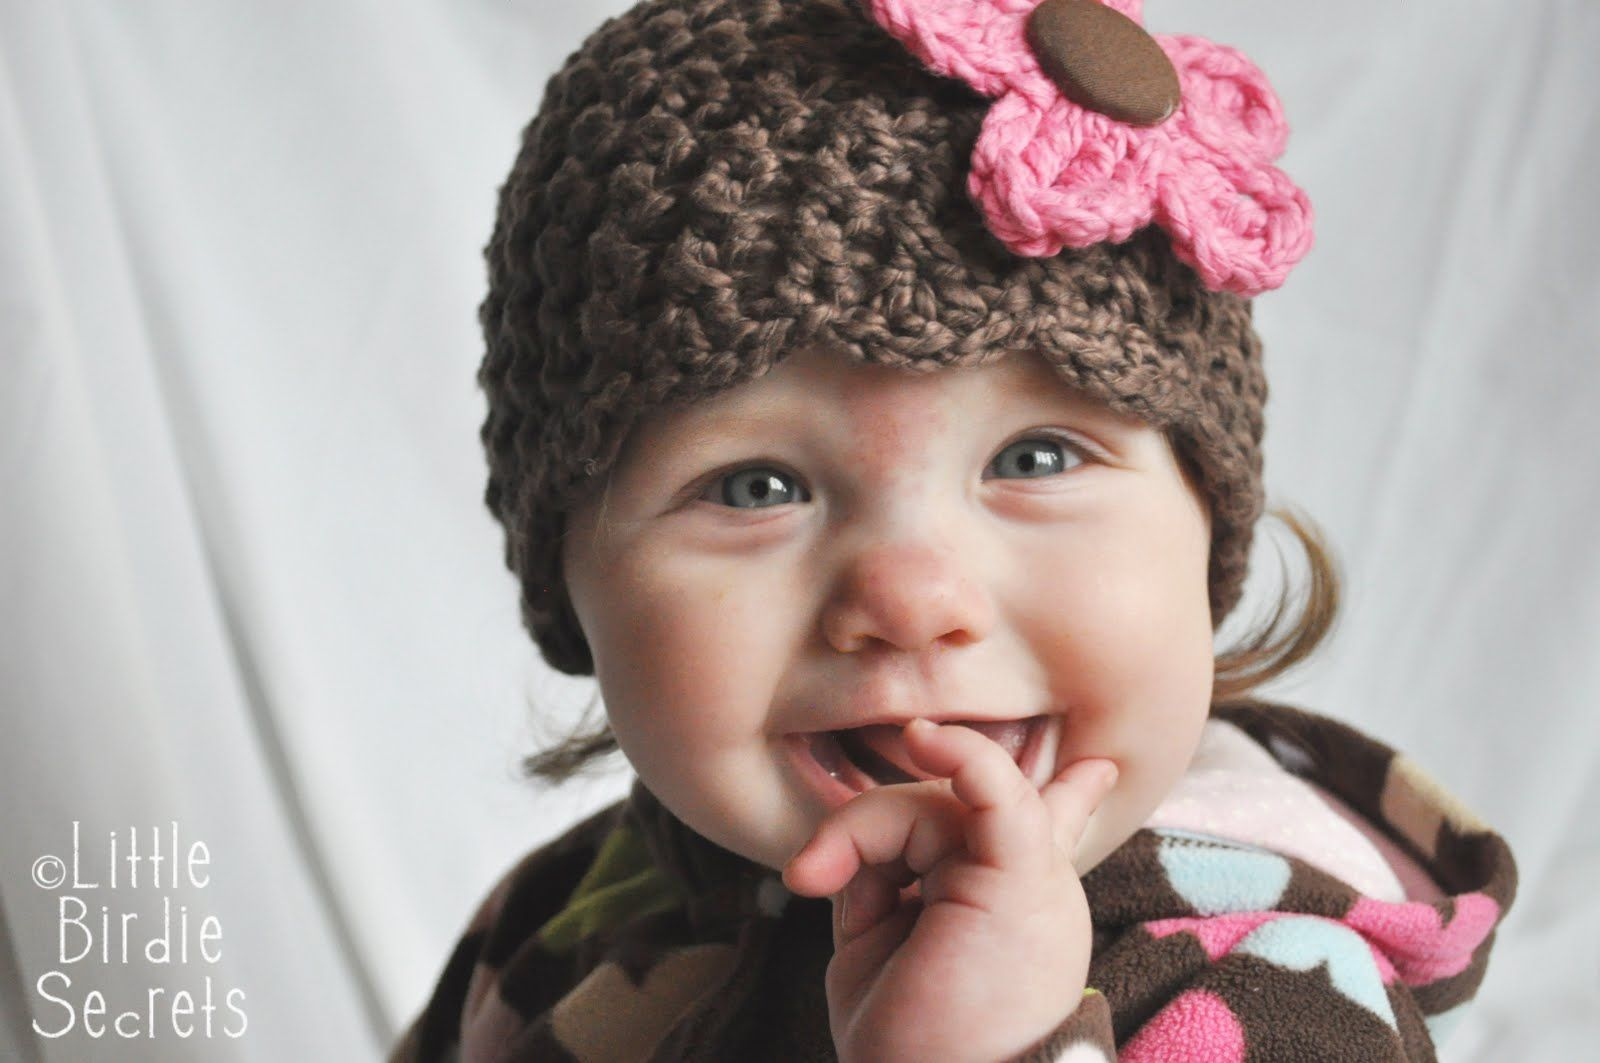 Little birdie secrets new baby hat and bootie patterns in the my new baby cloche thats just a fancy word for a snug fitting hat and booties crochet patterns are in the shop i am completely in lov bankloansurffo Choice Image